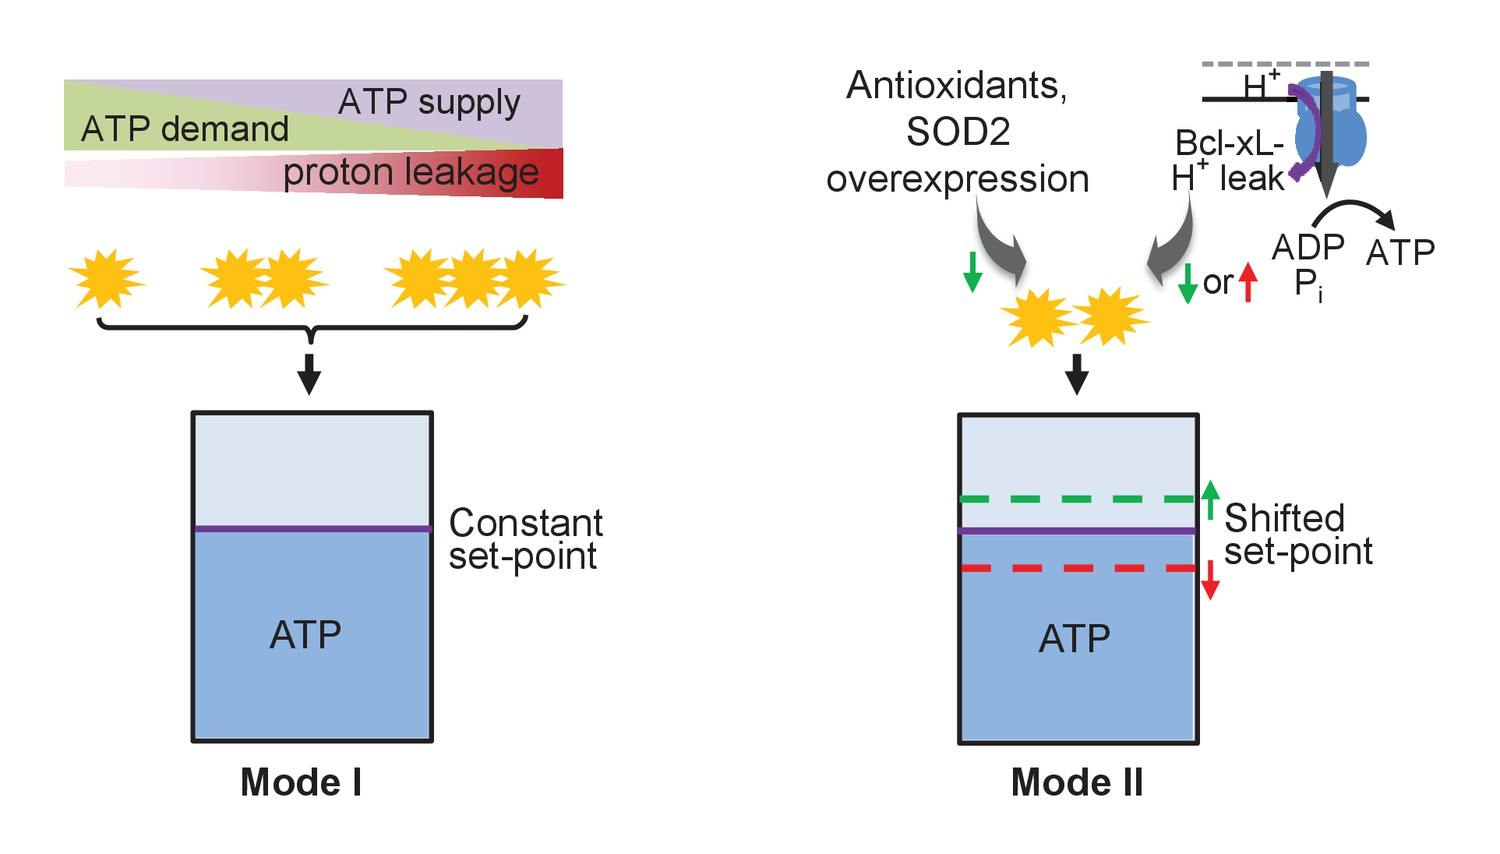 Mitochondrial Flashes Regulate Atp Homeostasis In The Heart Elife Flashing Led Circuit P Marian Flashers Schematic Of Mitoflash Regulation Set Point